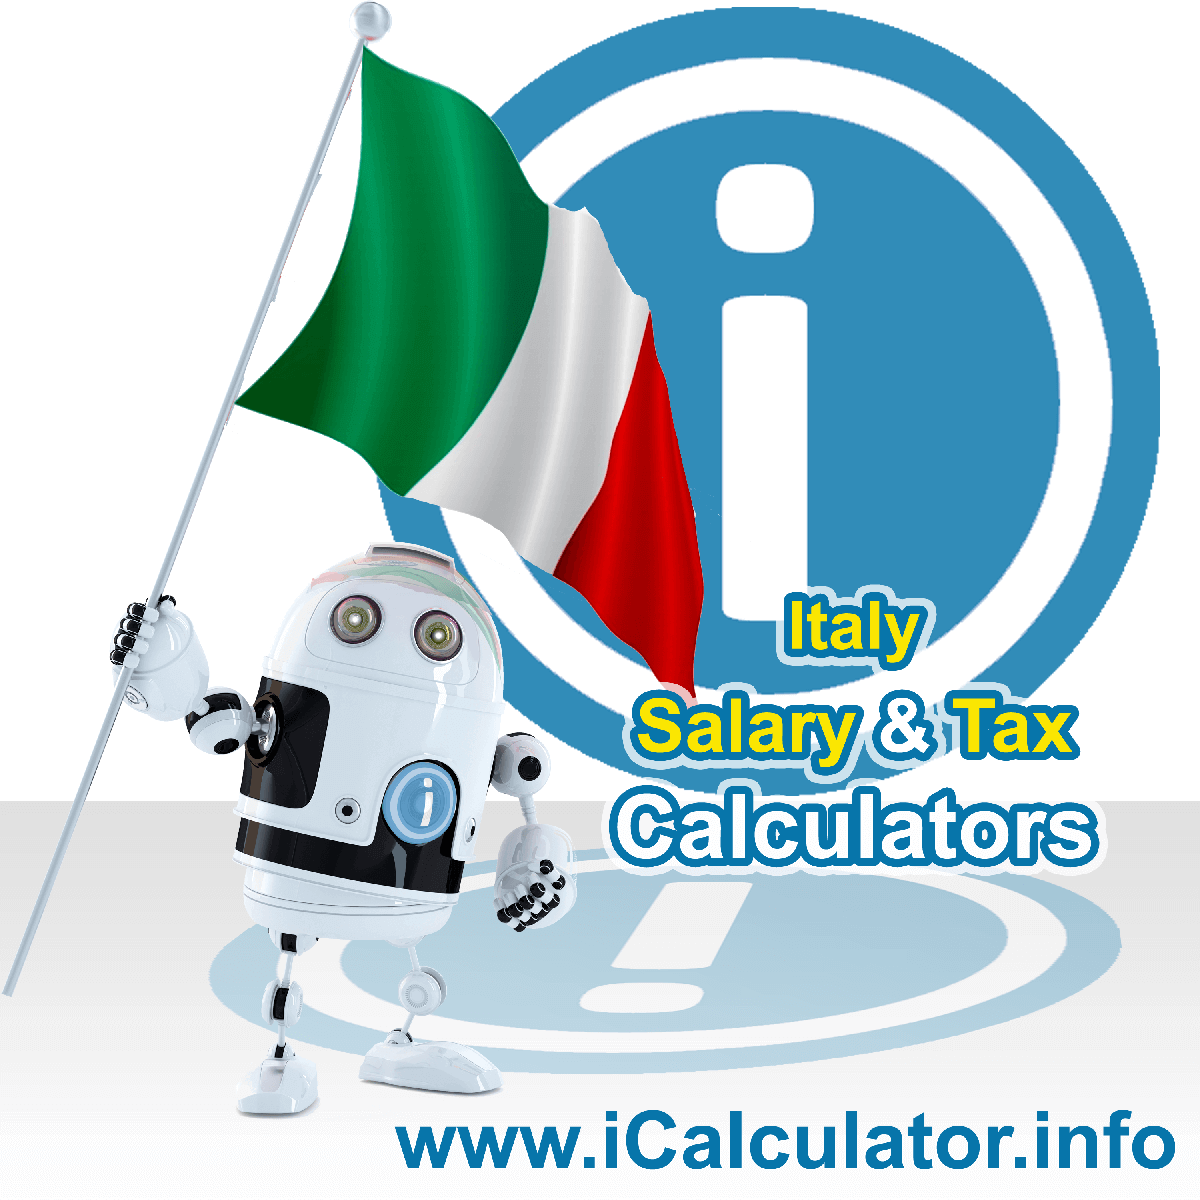 Italy Wage Calculator. This image shows the Italy flag and information relating to the tax formula for the Italy Tax Calculator